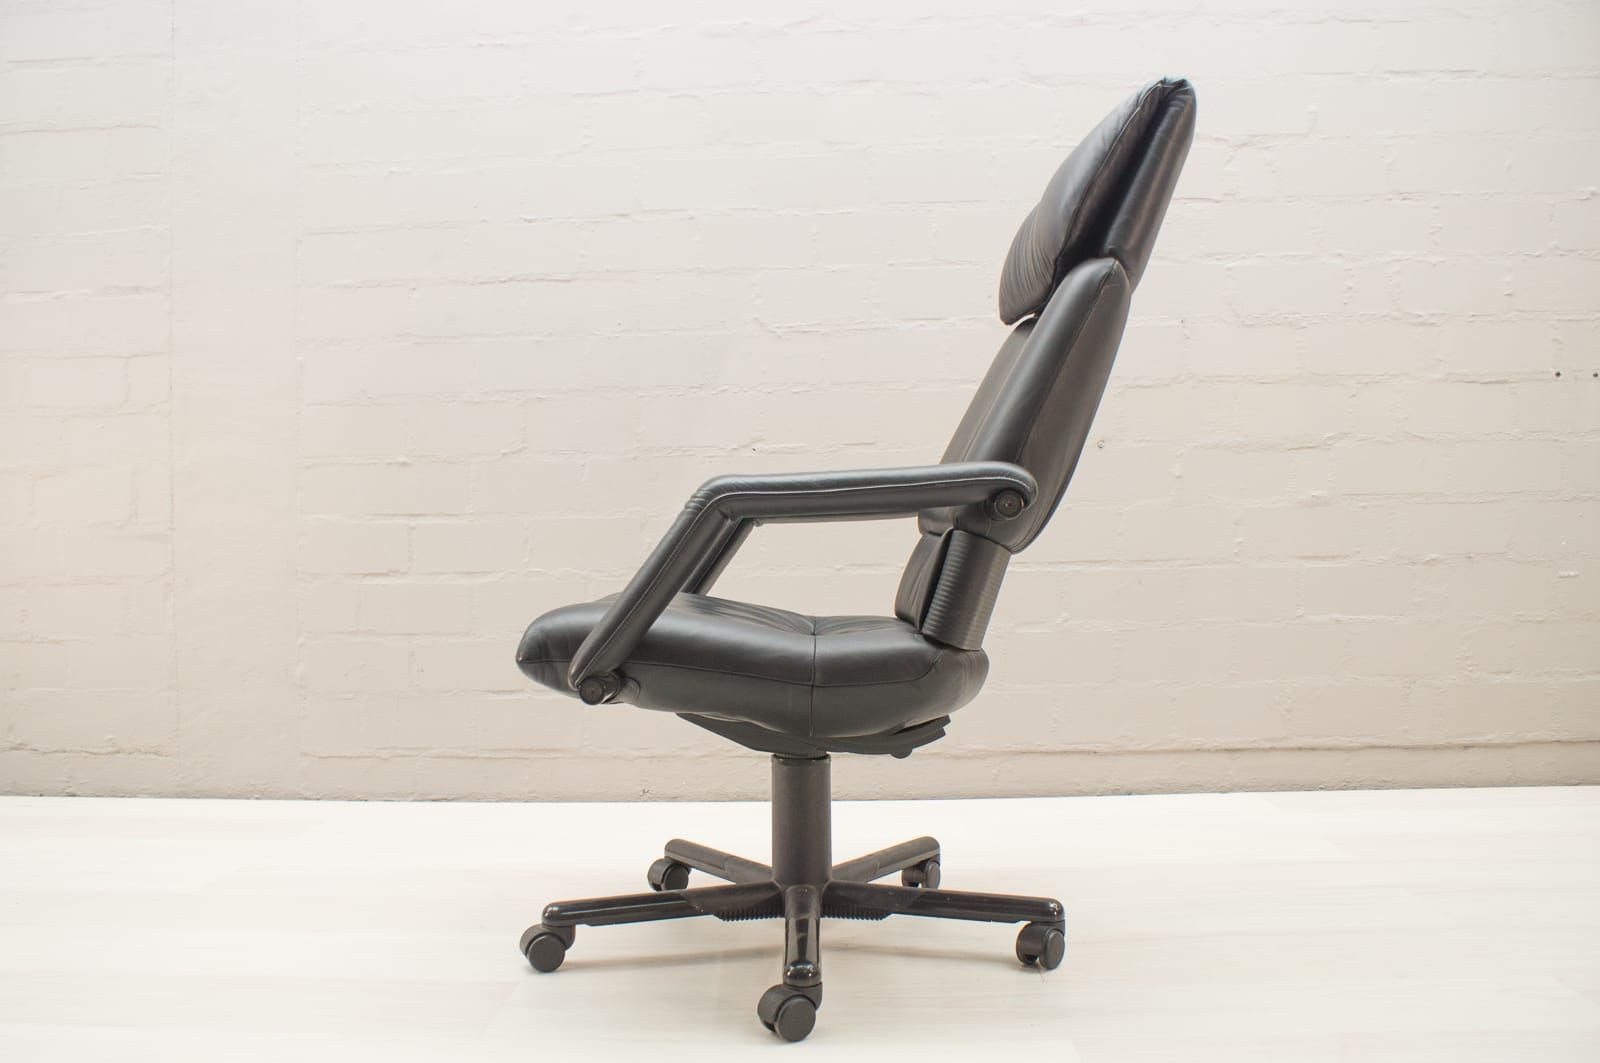 Vitra Chair Figura Mario Bellini Vintage Office Chair